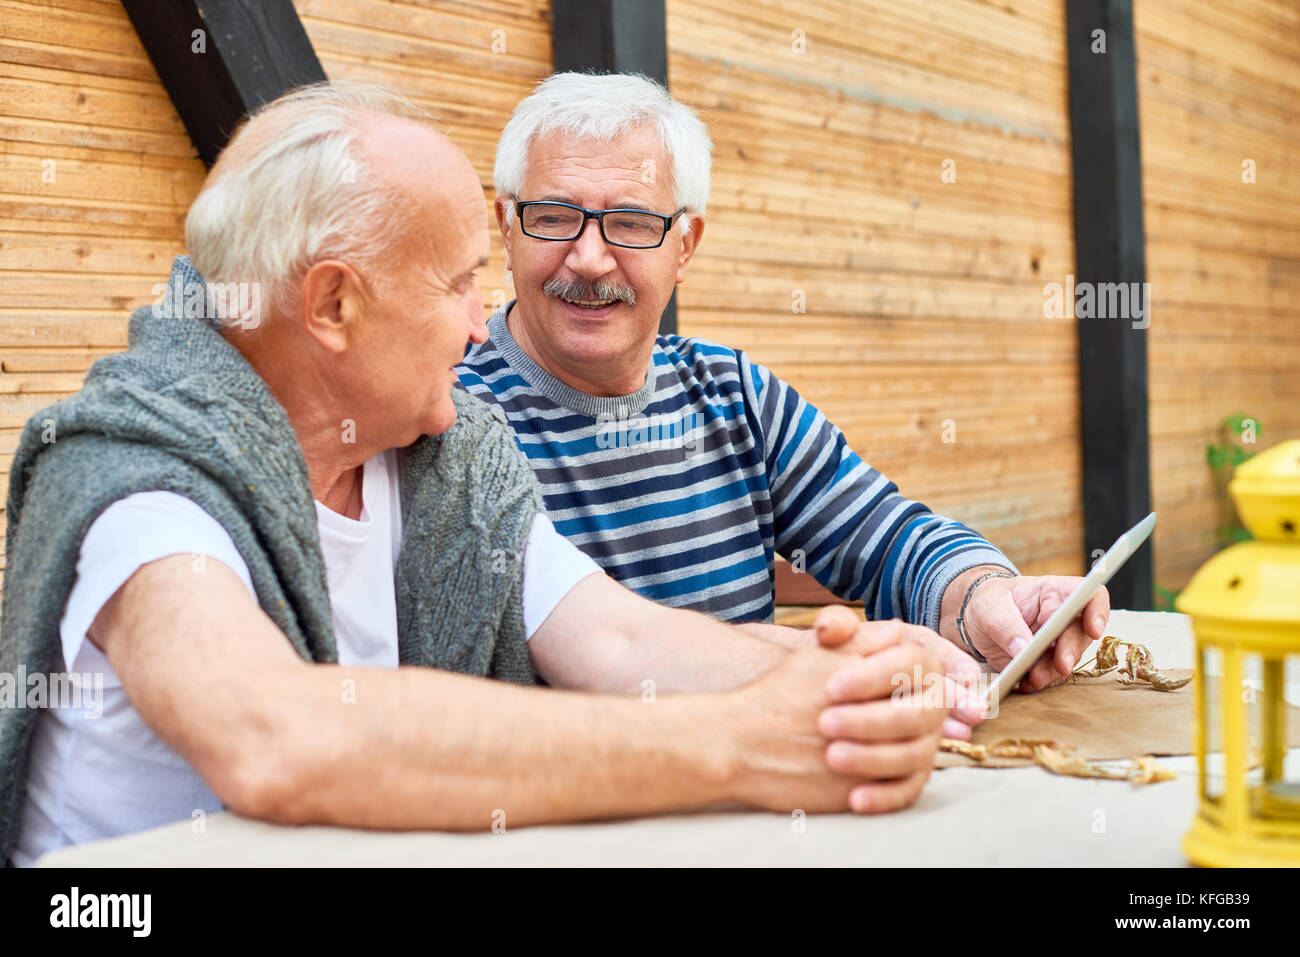 Best Friends at Outdoor Cafe - Stock Image